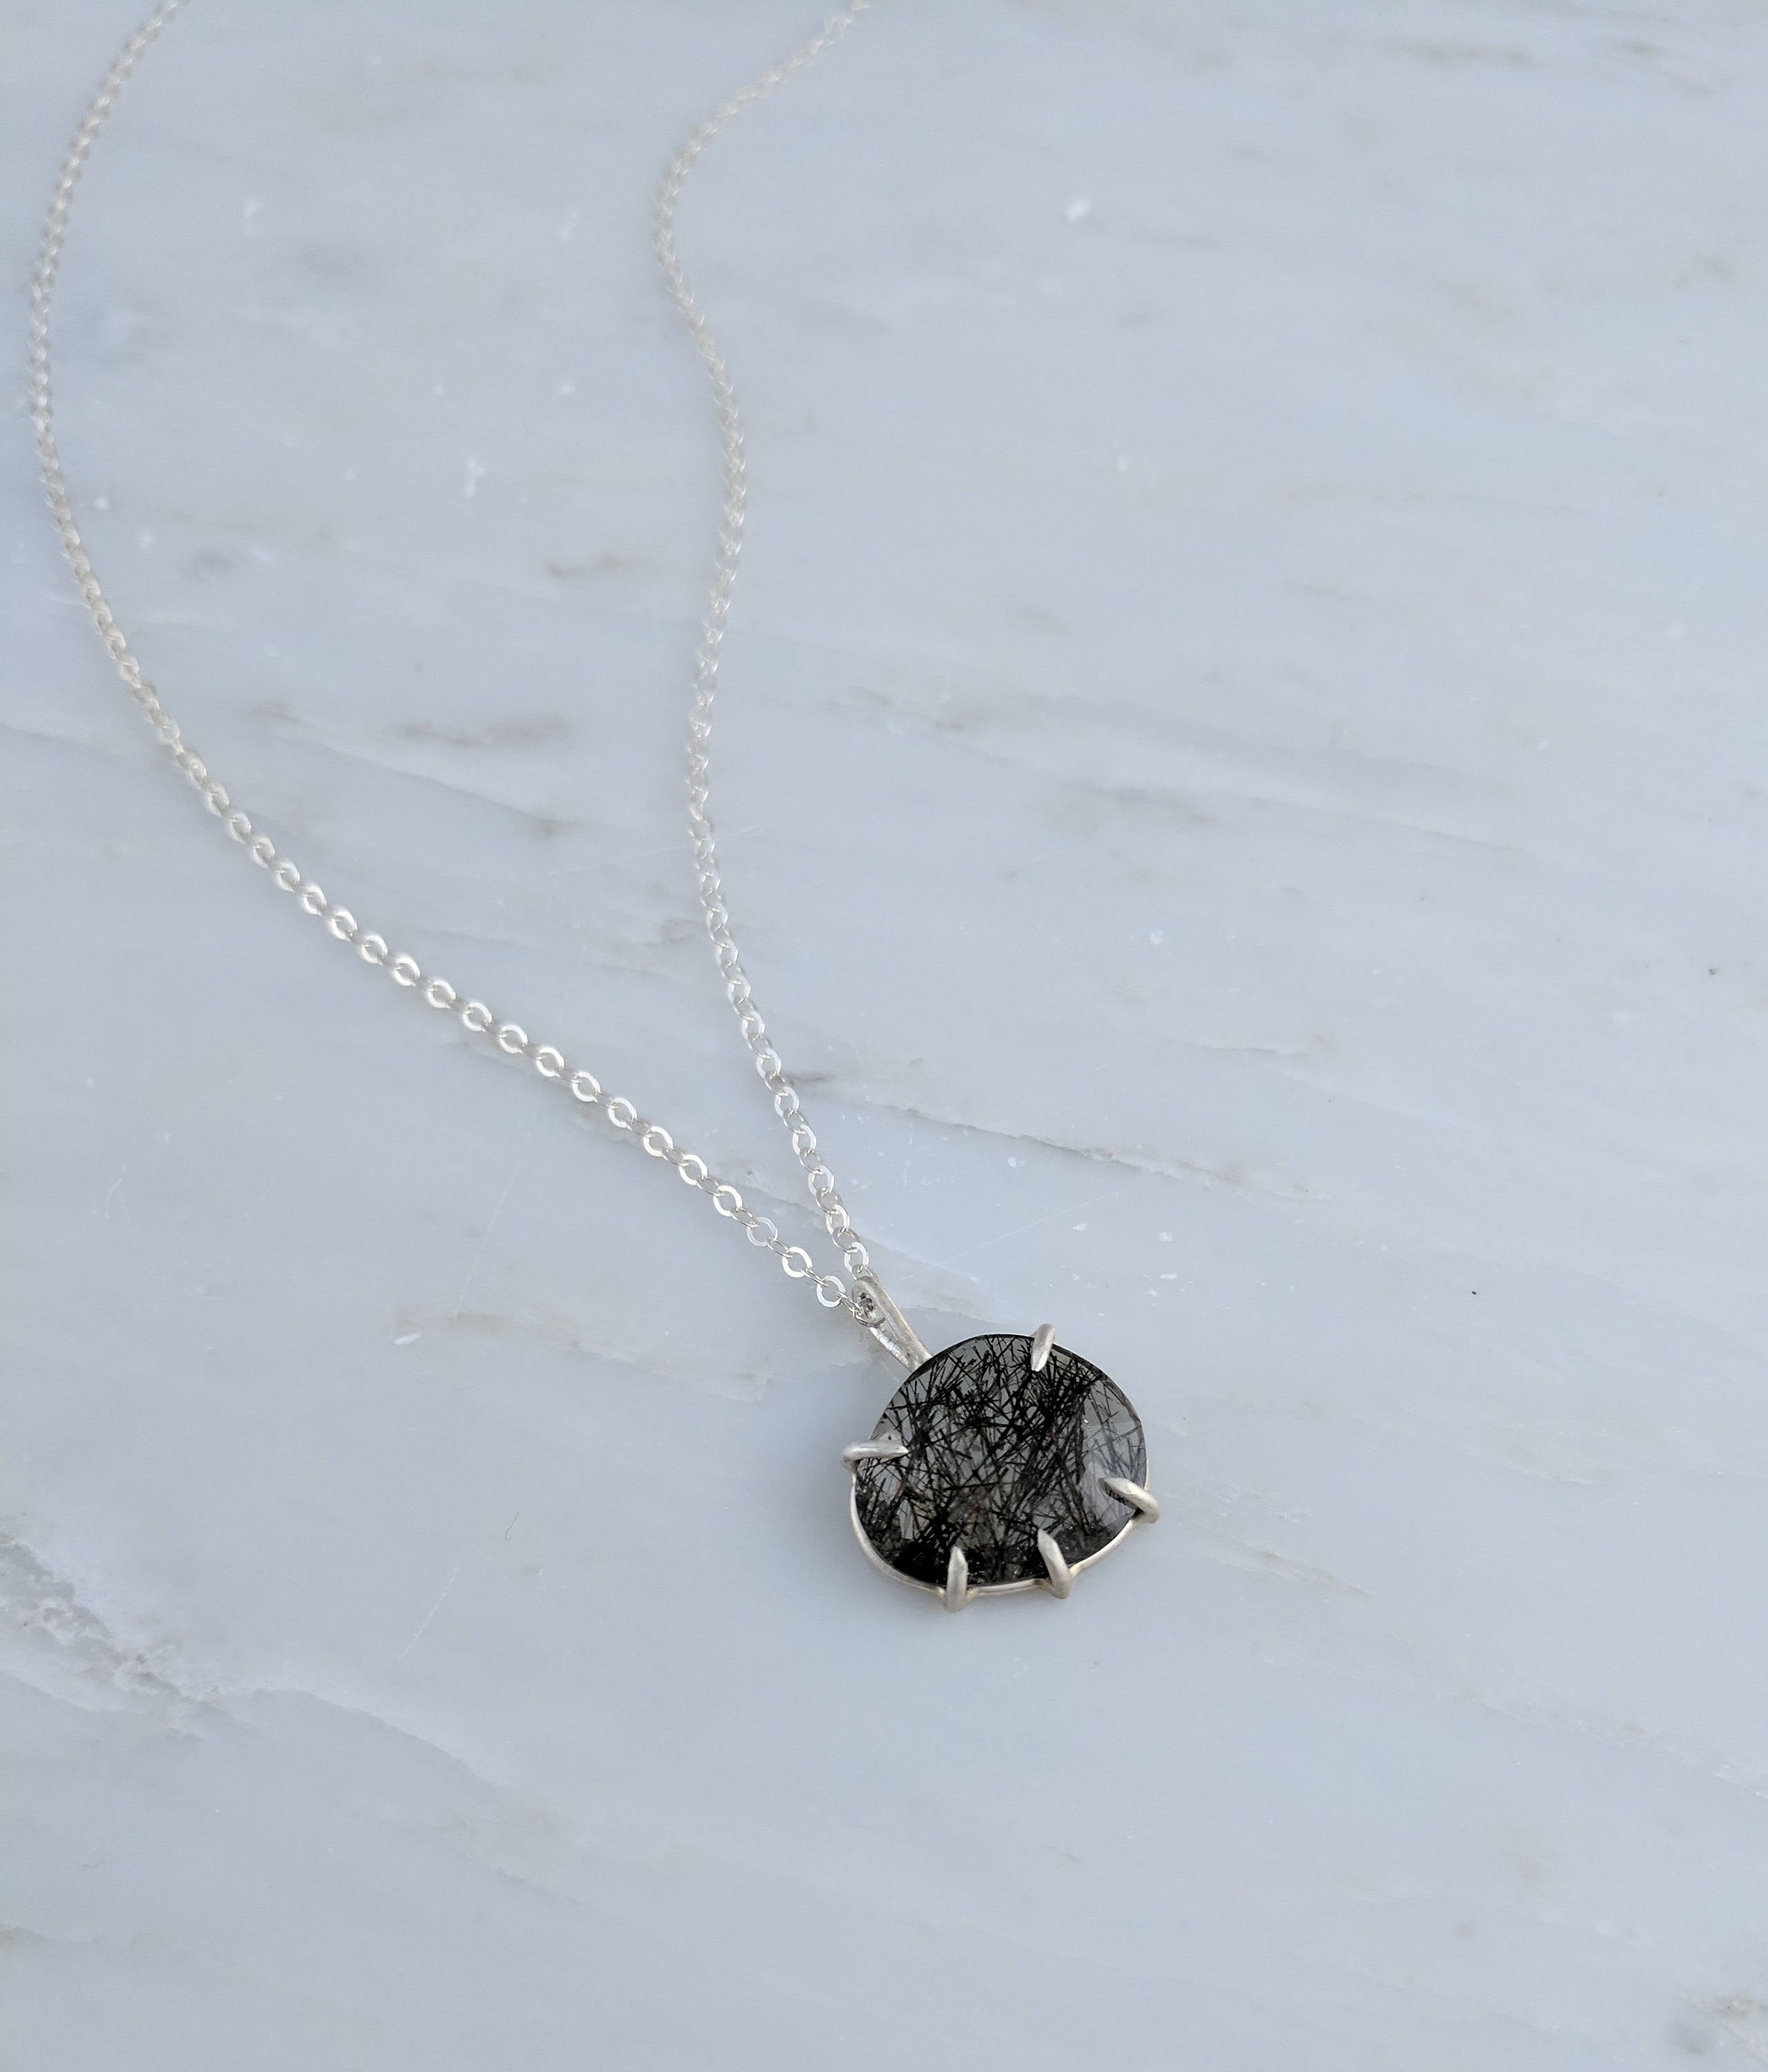 Black Rose Cut Tourmalinated Quartz Pendant Necklace Prong Set Sterling Silver Rustic Boho Layering Minimal Jewelry Black Gemstone Necklace